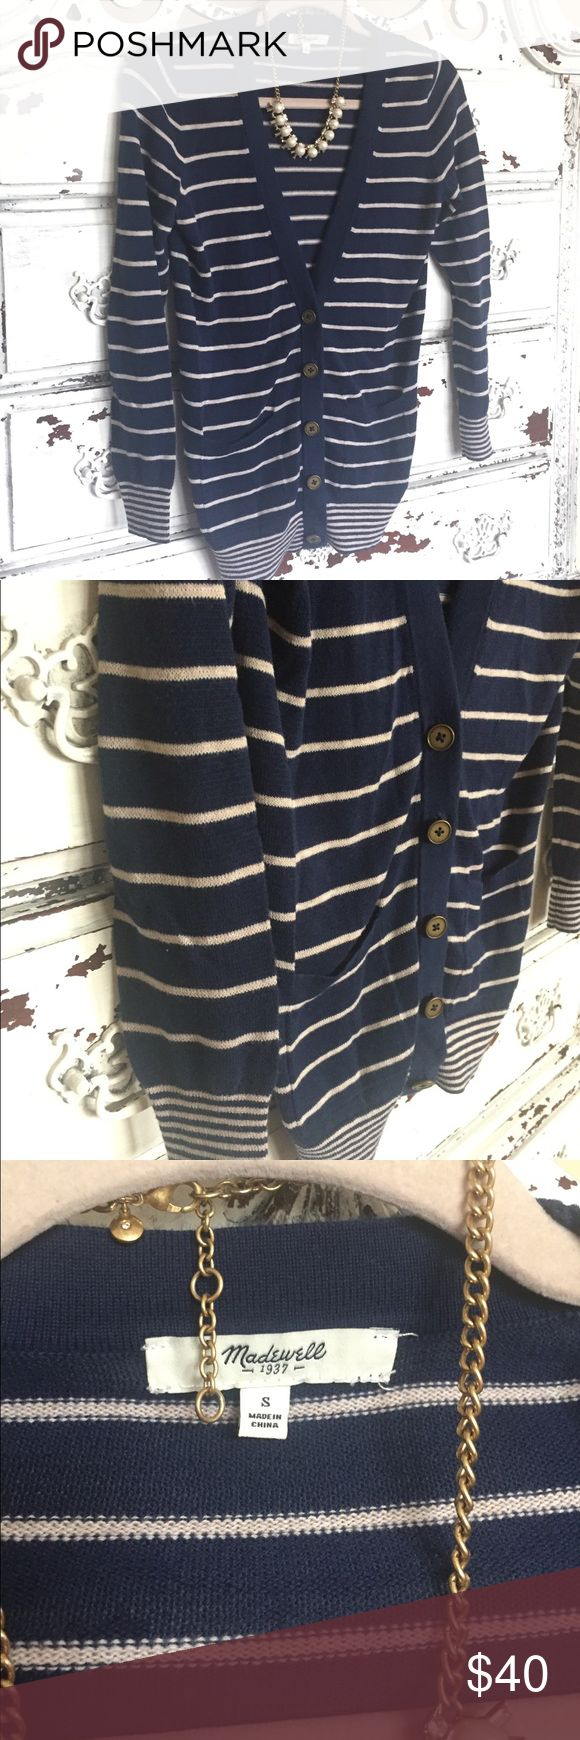 Madewell navy striped preppy nautical cardigan Classic! Madewell Sweaters Cardigans